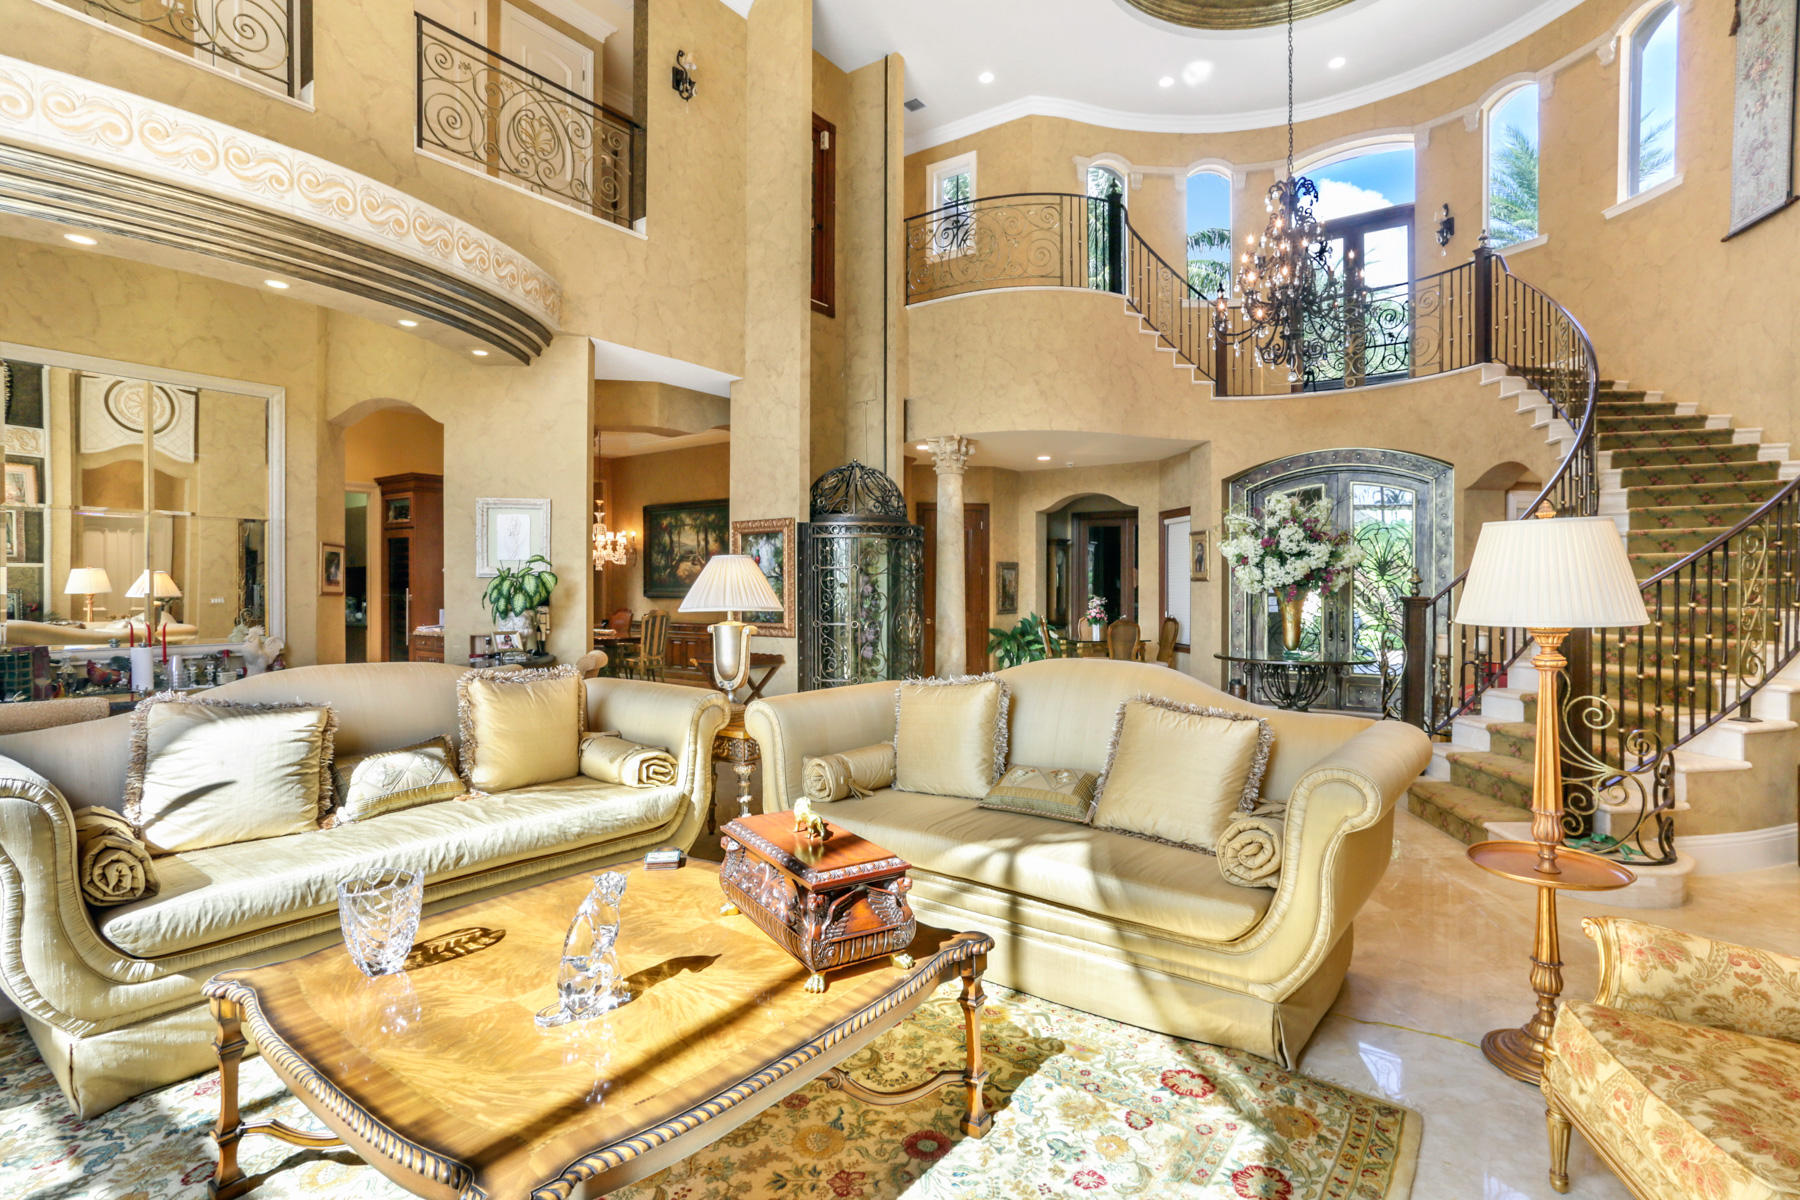 HARBOUR ISLES NORTH PALM BEACH REAL ESTATE